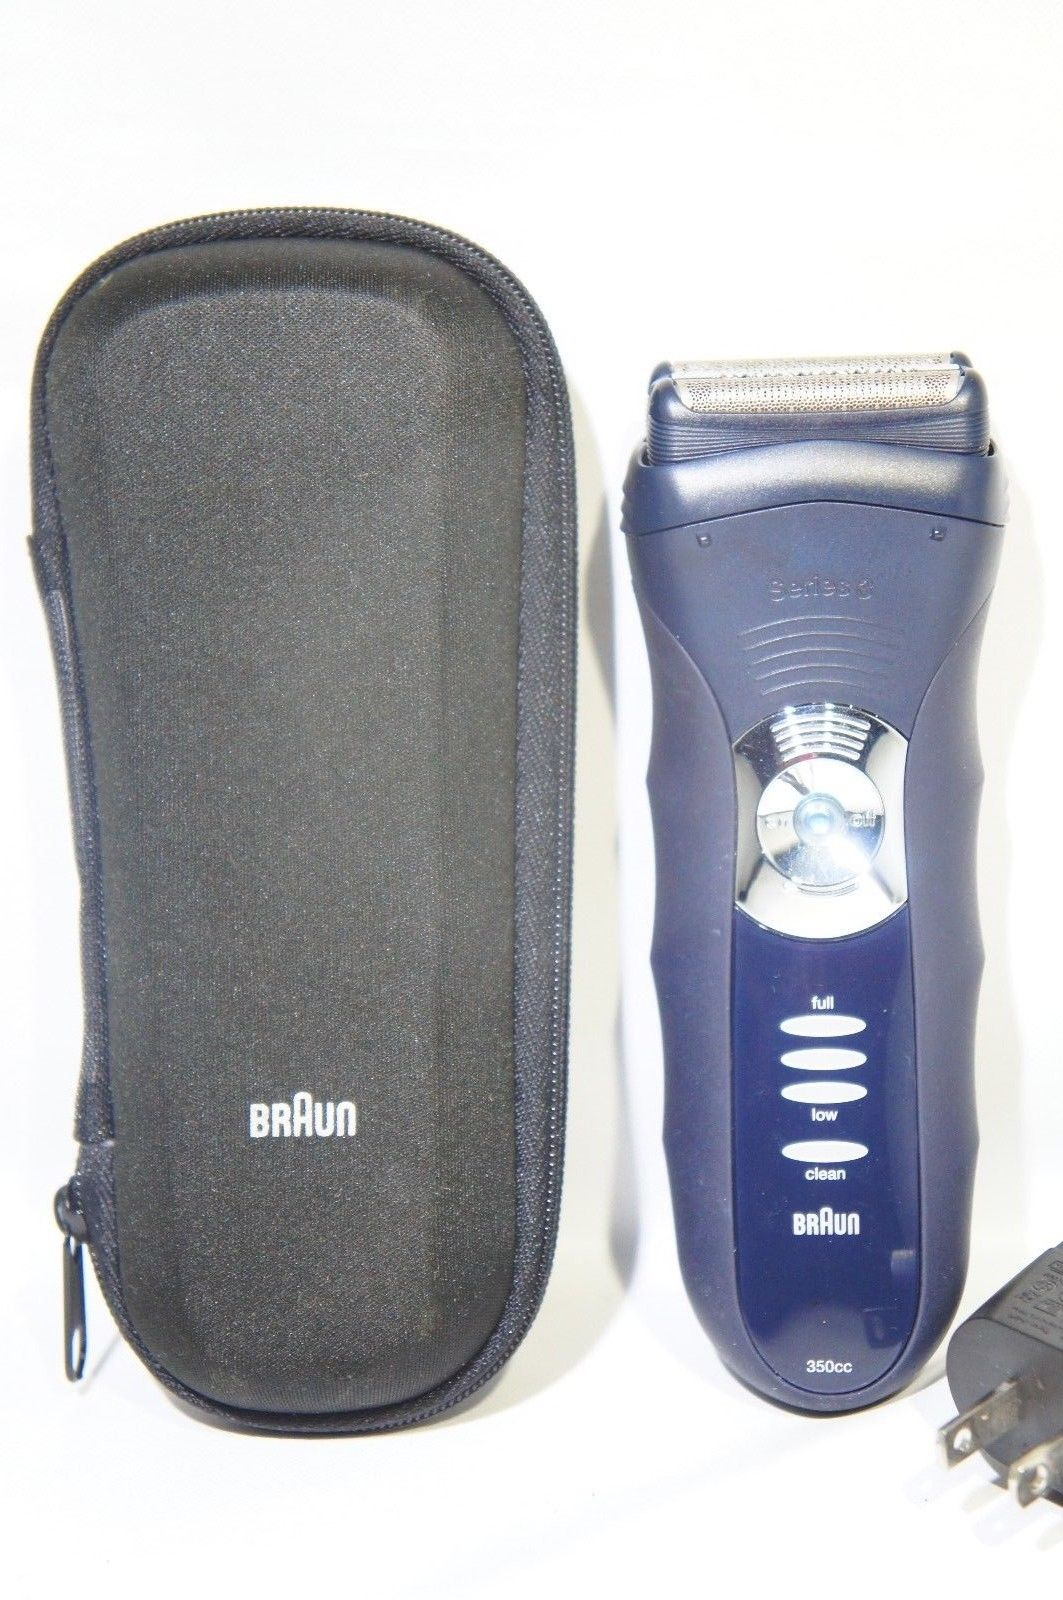 Braun Series 3 350cc Men's Electric Foil Shaver (Like New)